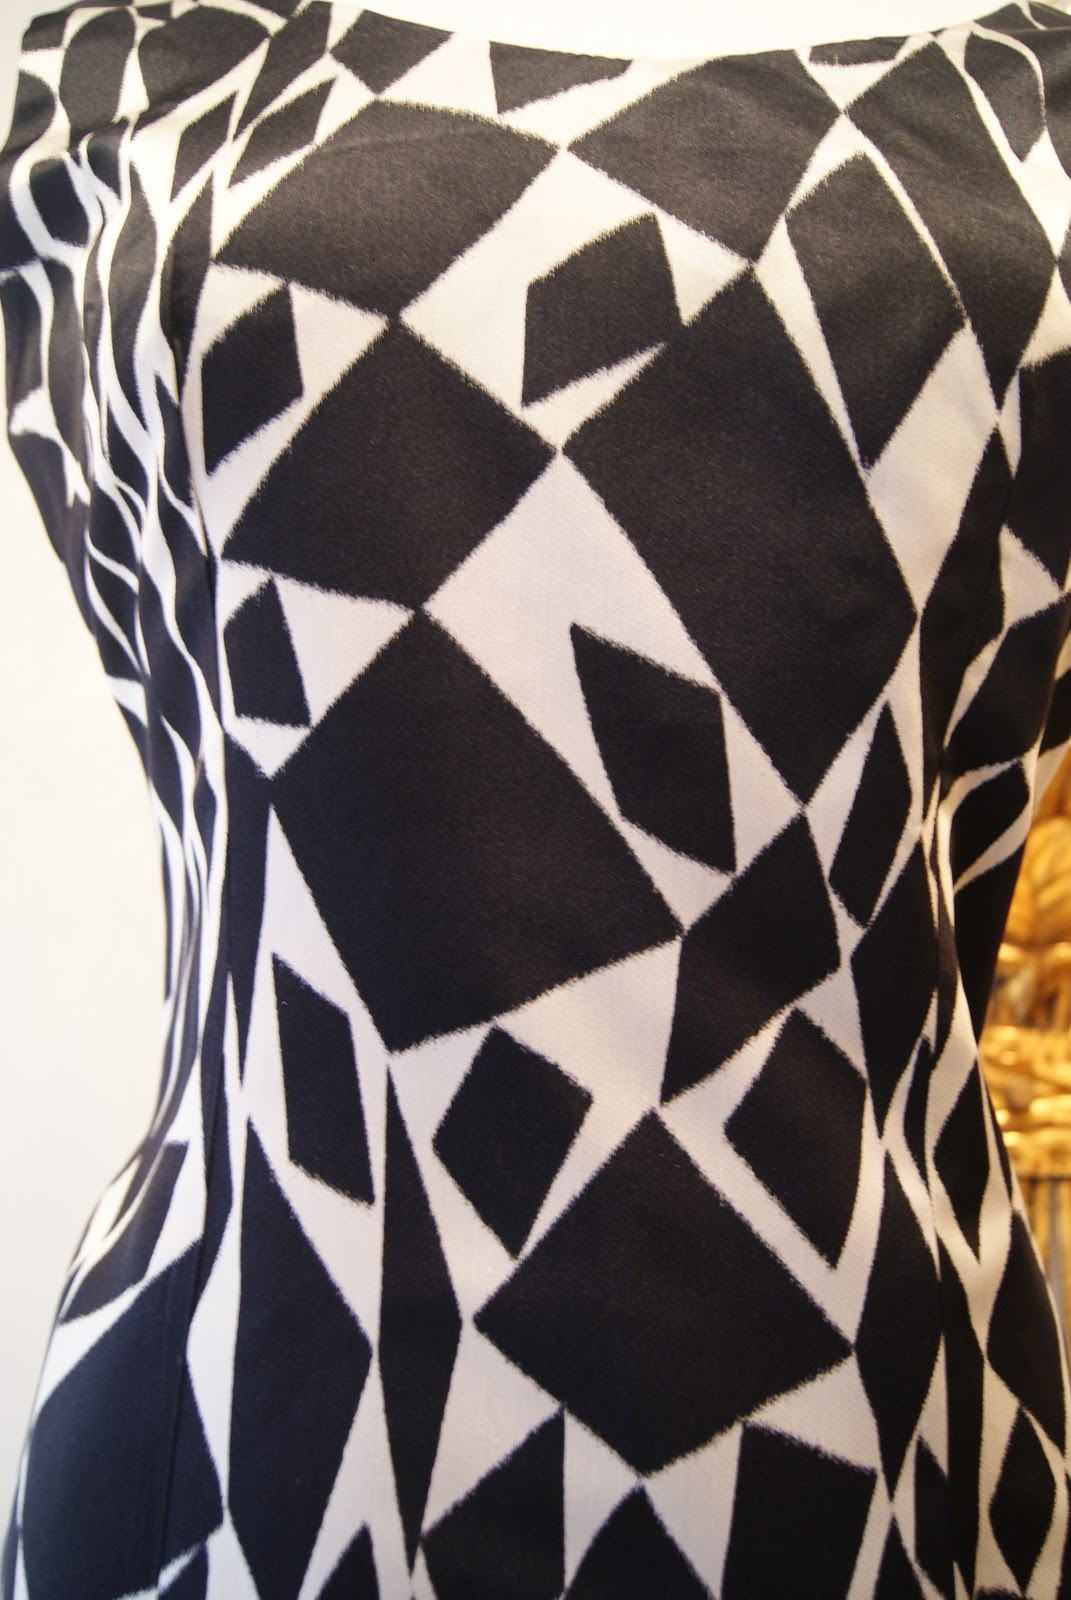 One of a kind 1950's couture jacket and dress by California designer ...